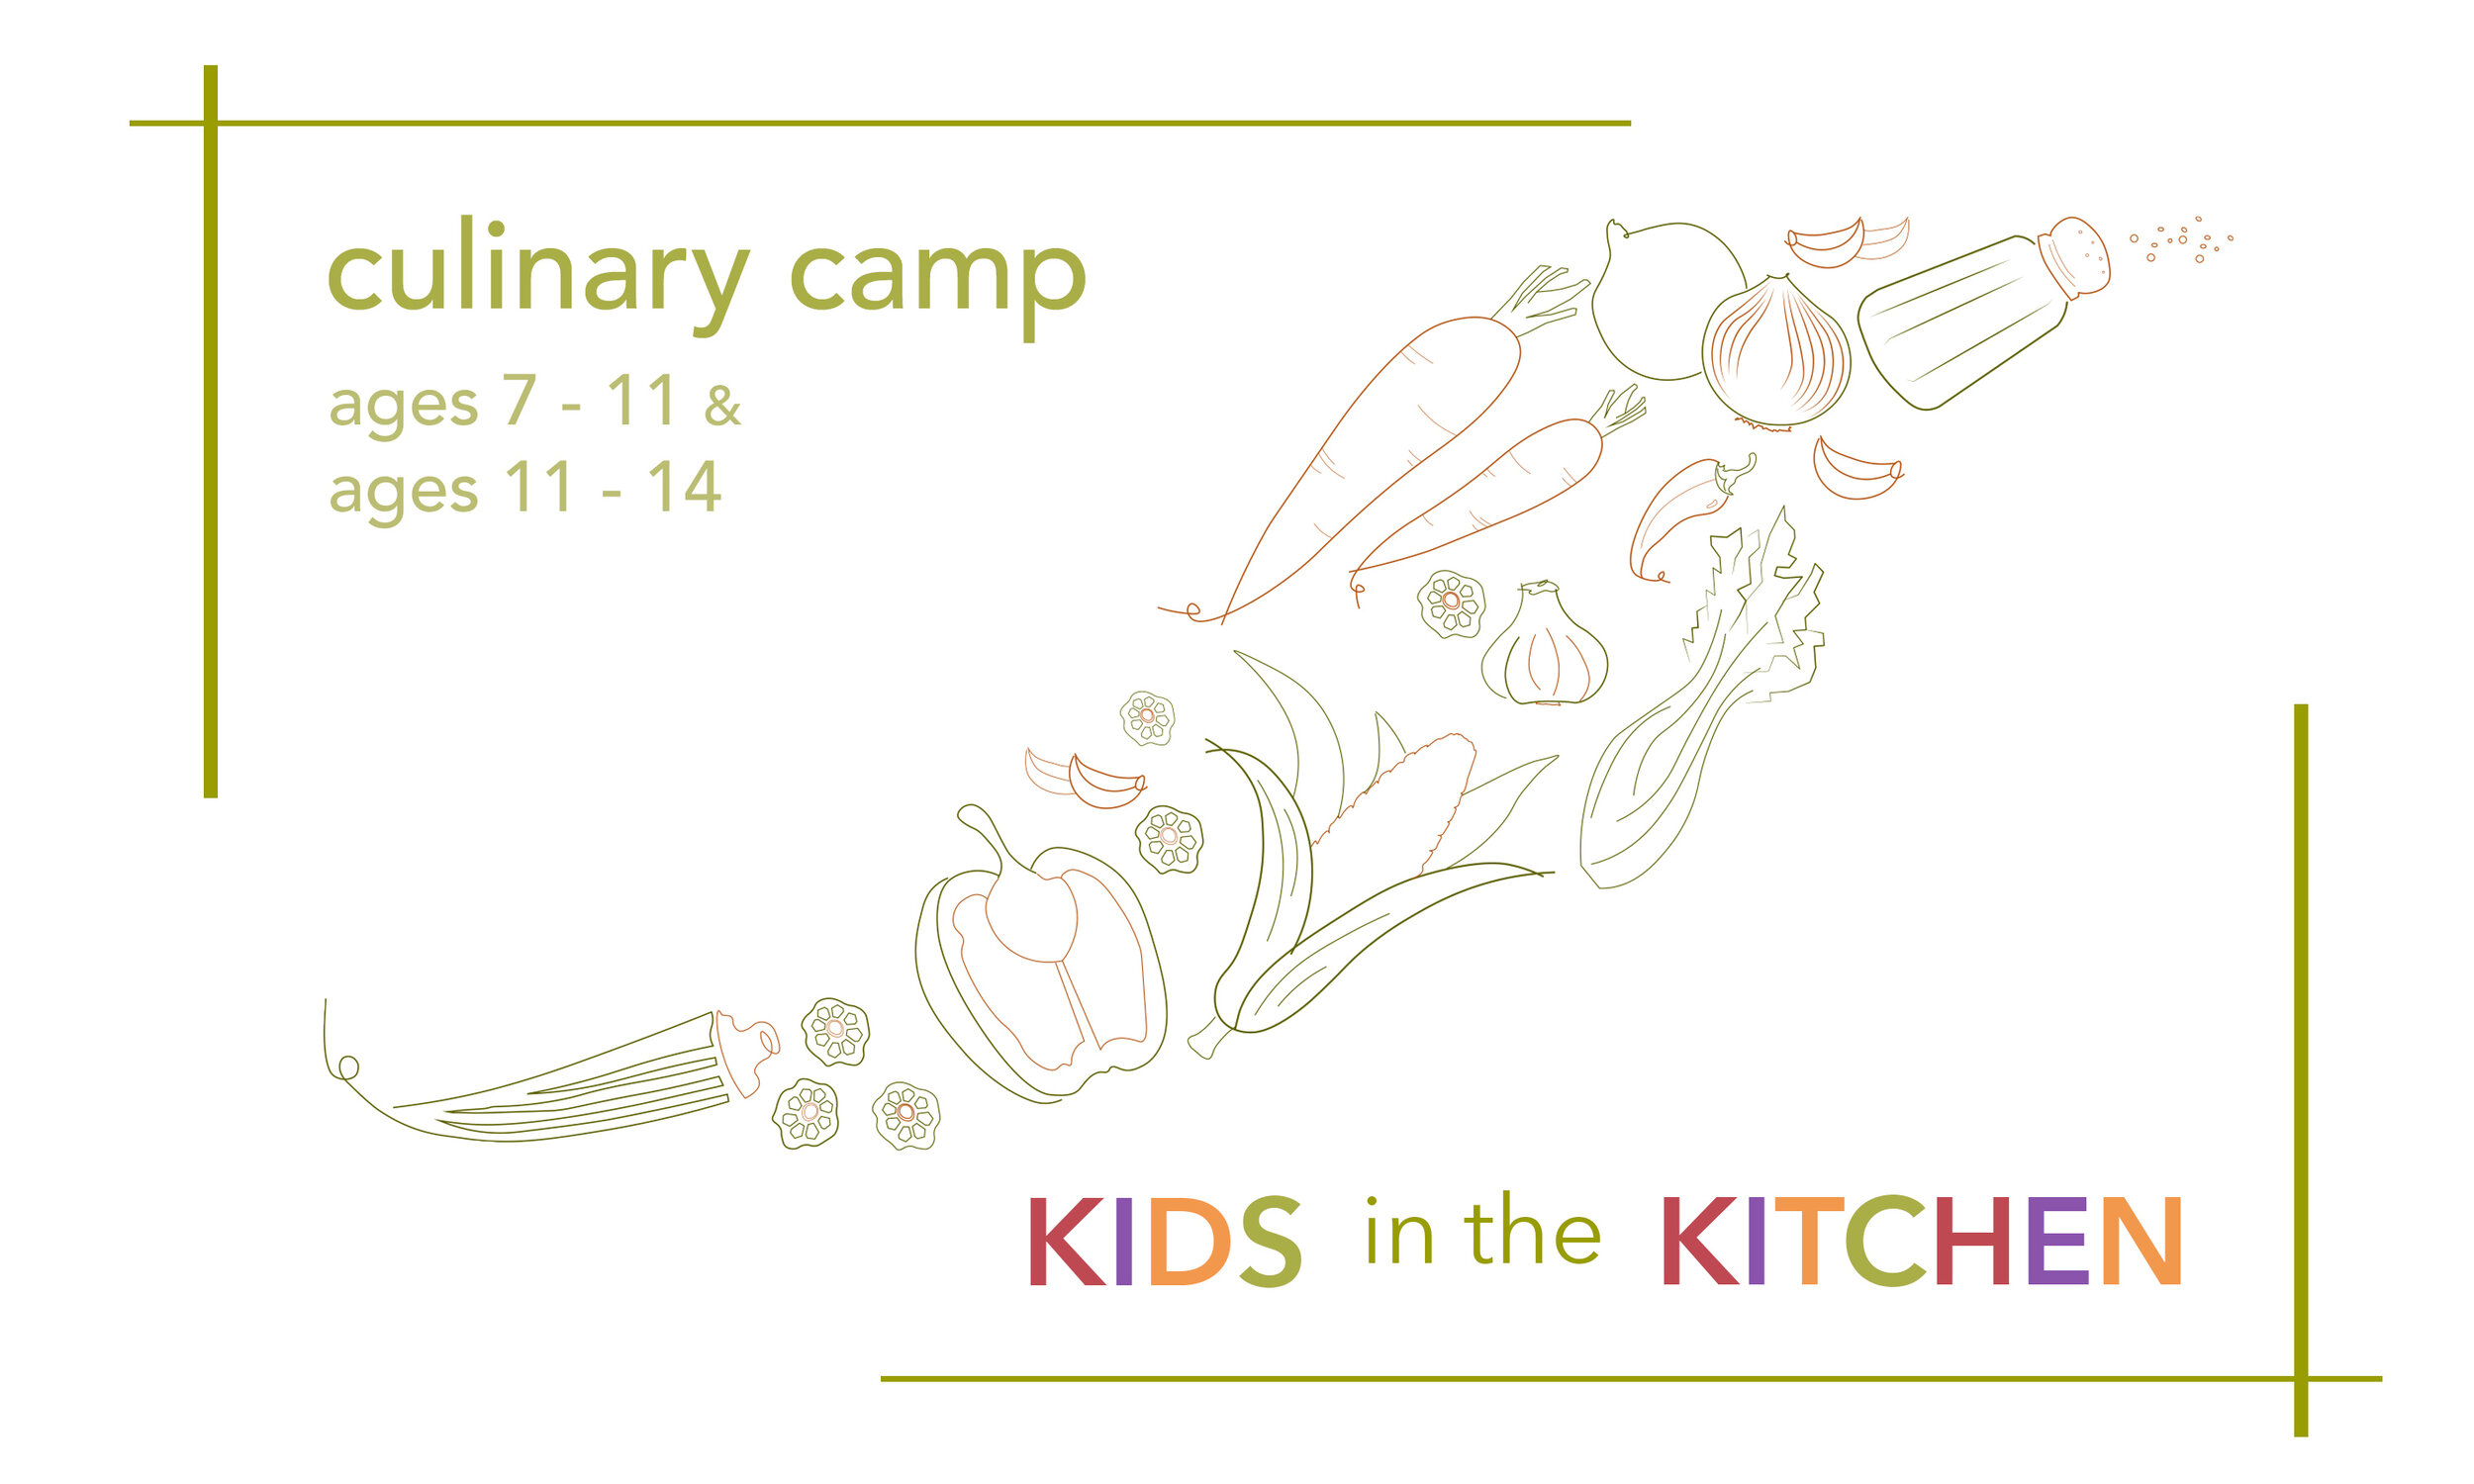 kids in the kitchen (culinary camp).jpg